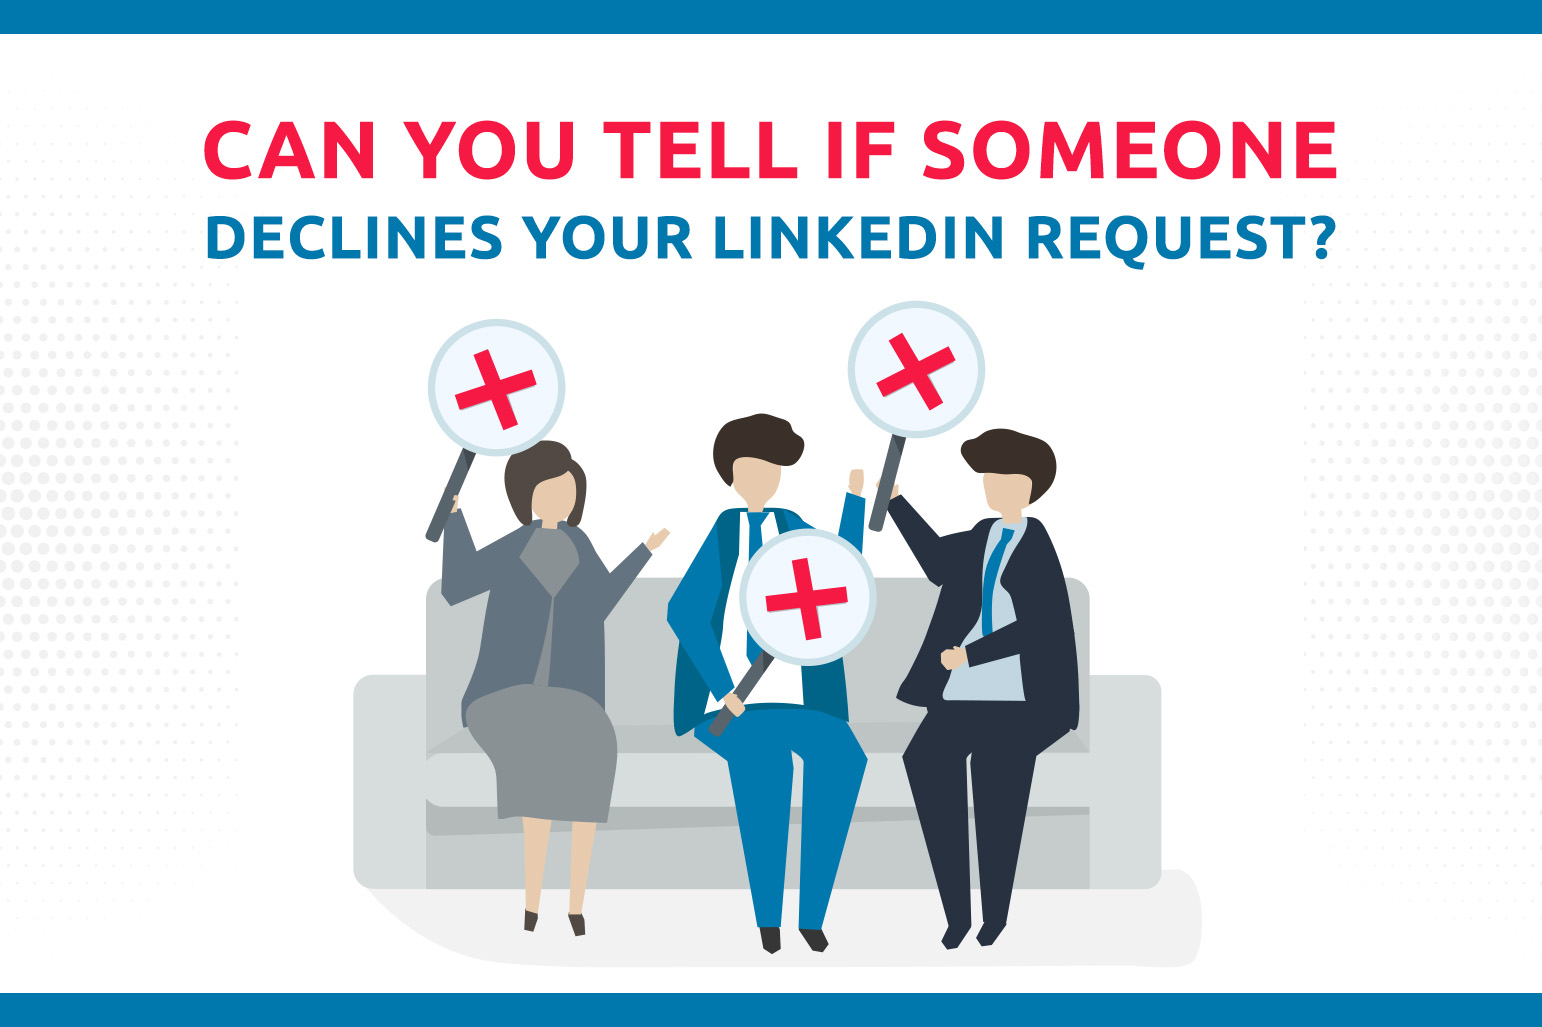 Can You Tell If Someone Declines Your LinkedIn Request?